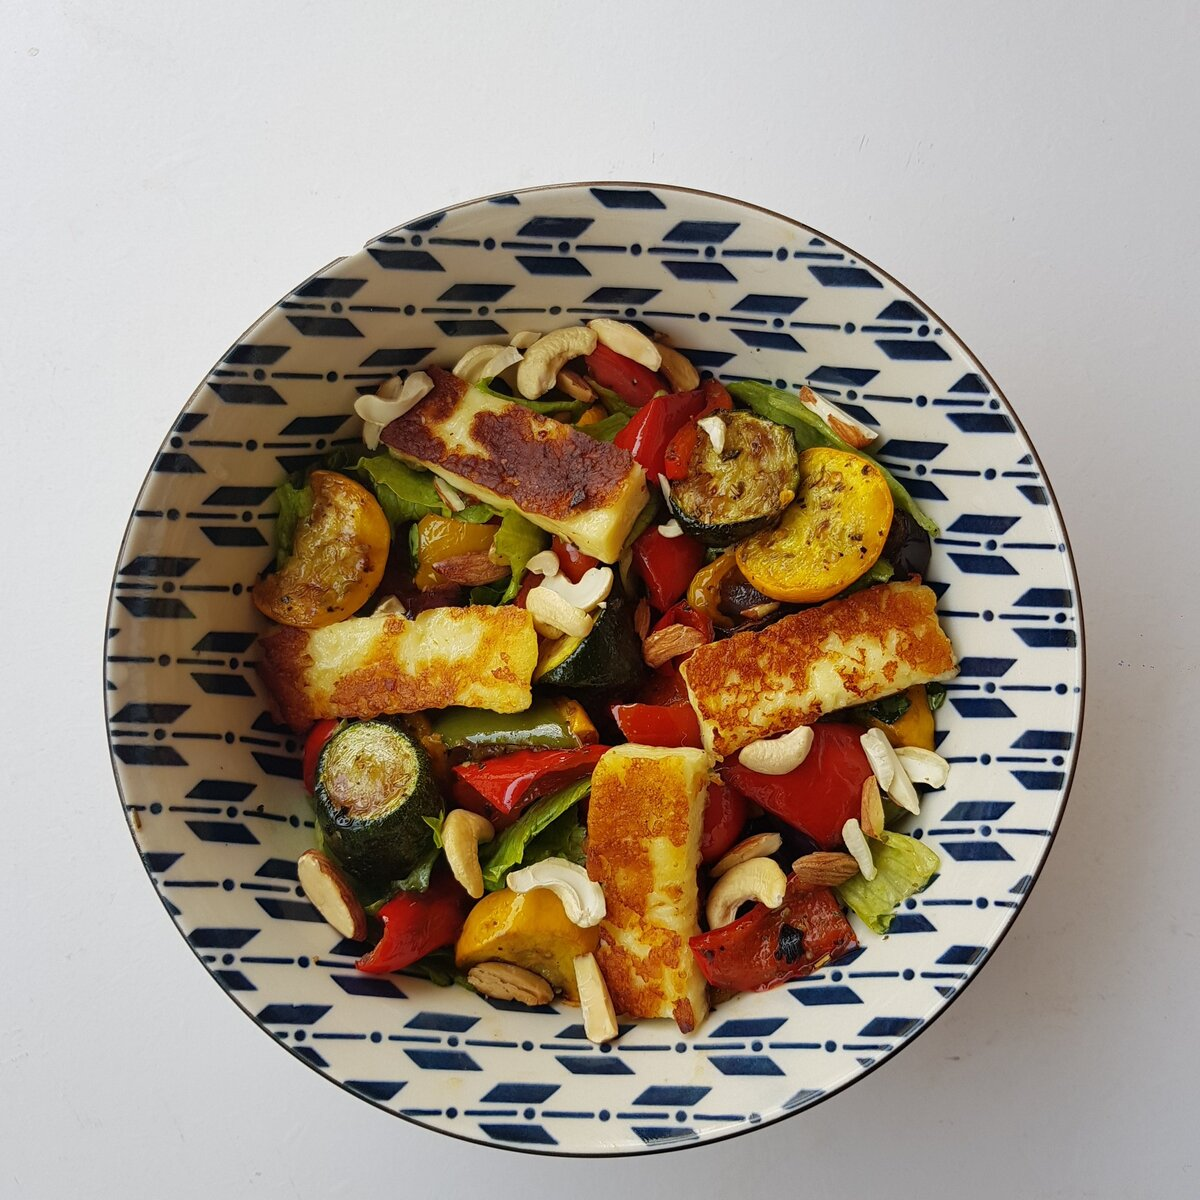 #RestaurantInspired: Grilled Halloumi Salad